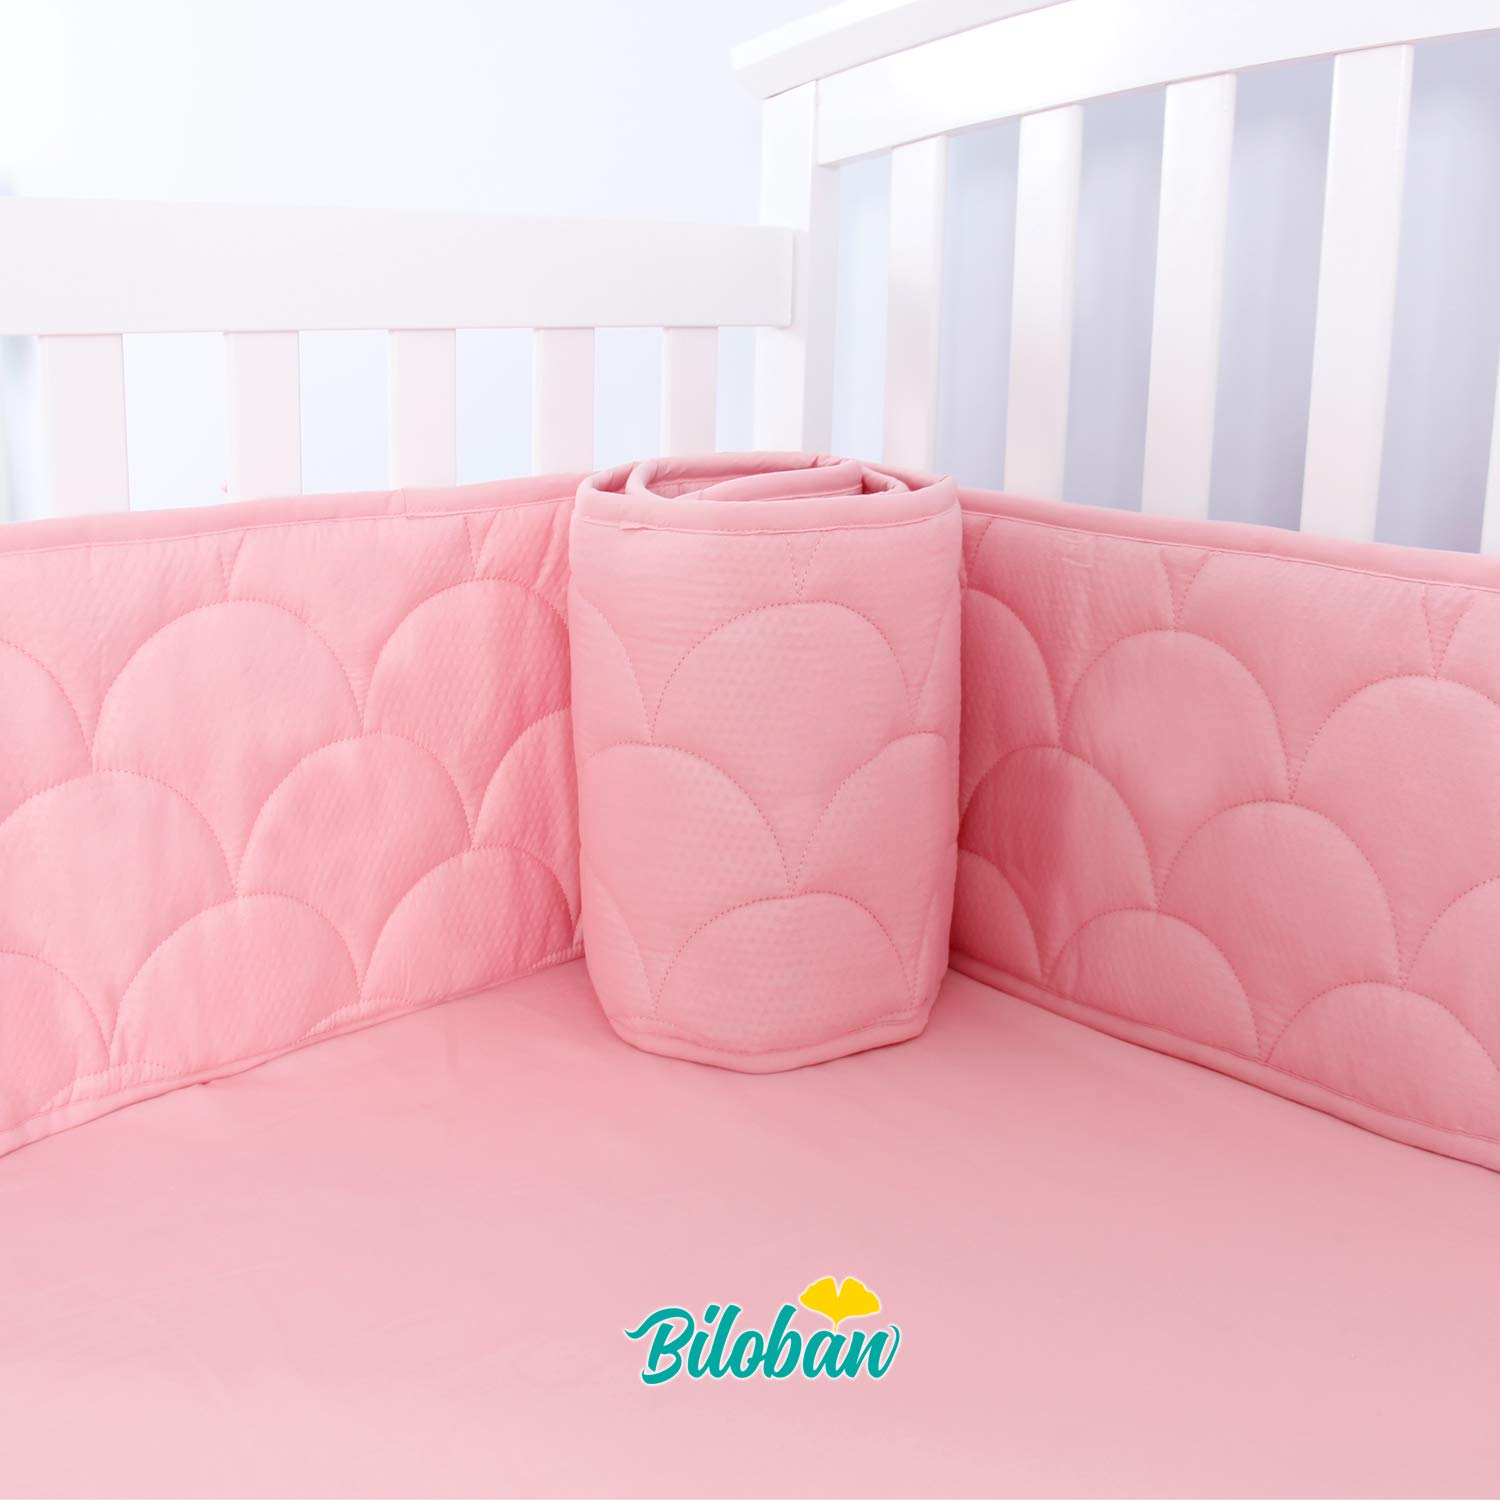 Crib Bumpers Pads for Baby, Breathable Machine Washable Baby Crib Bumper Liners for Girls, Safe & Soft Baby Crib Padding 4 Pieces/Set, Pink by Biloban